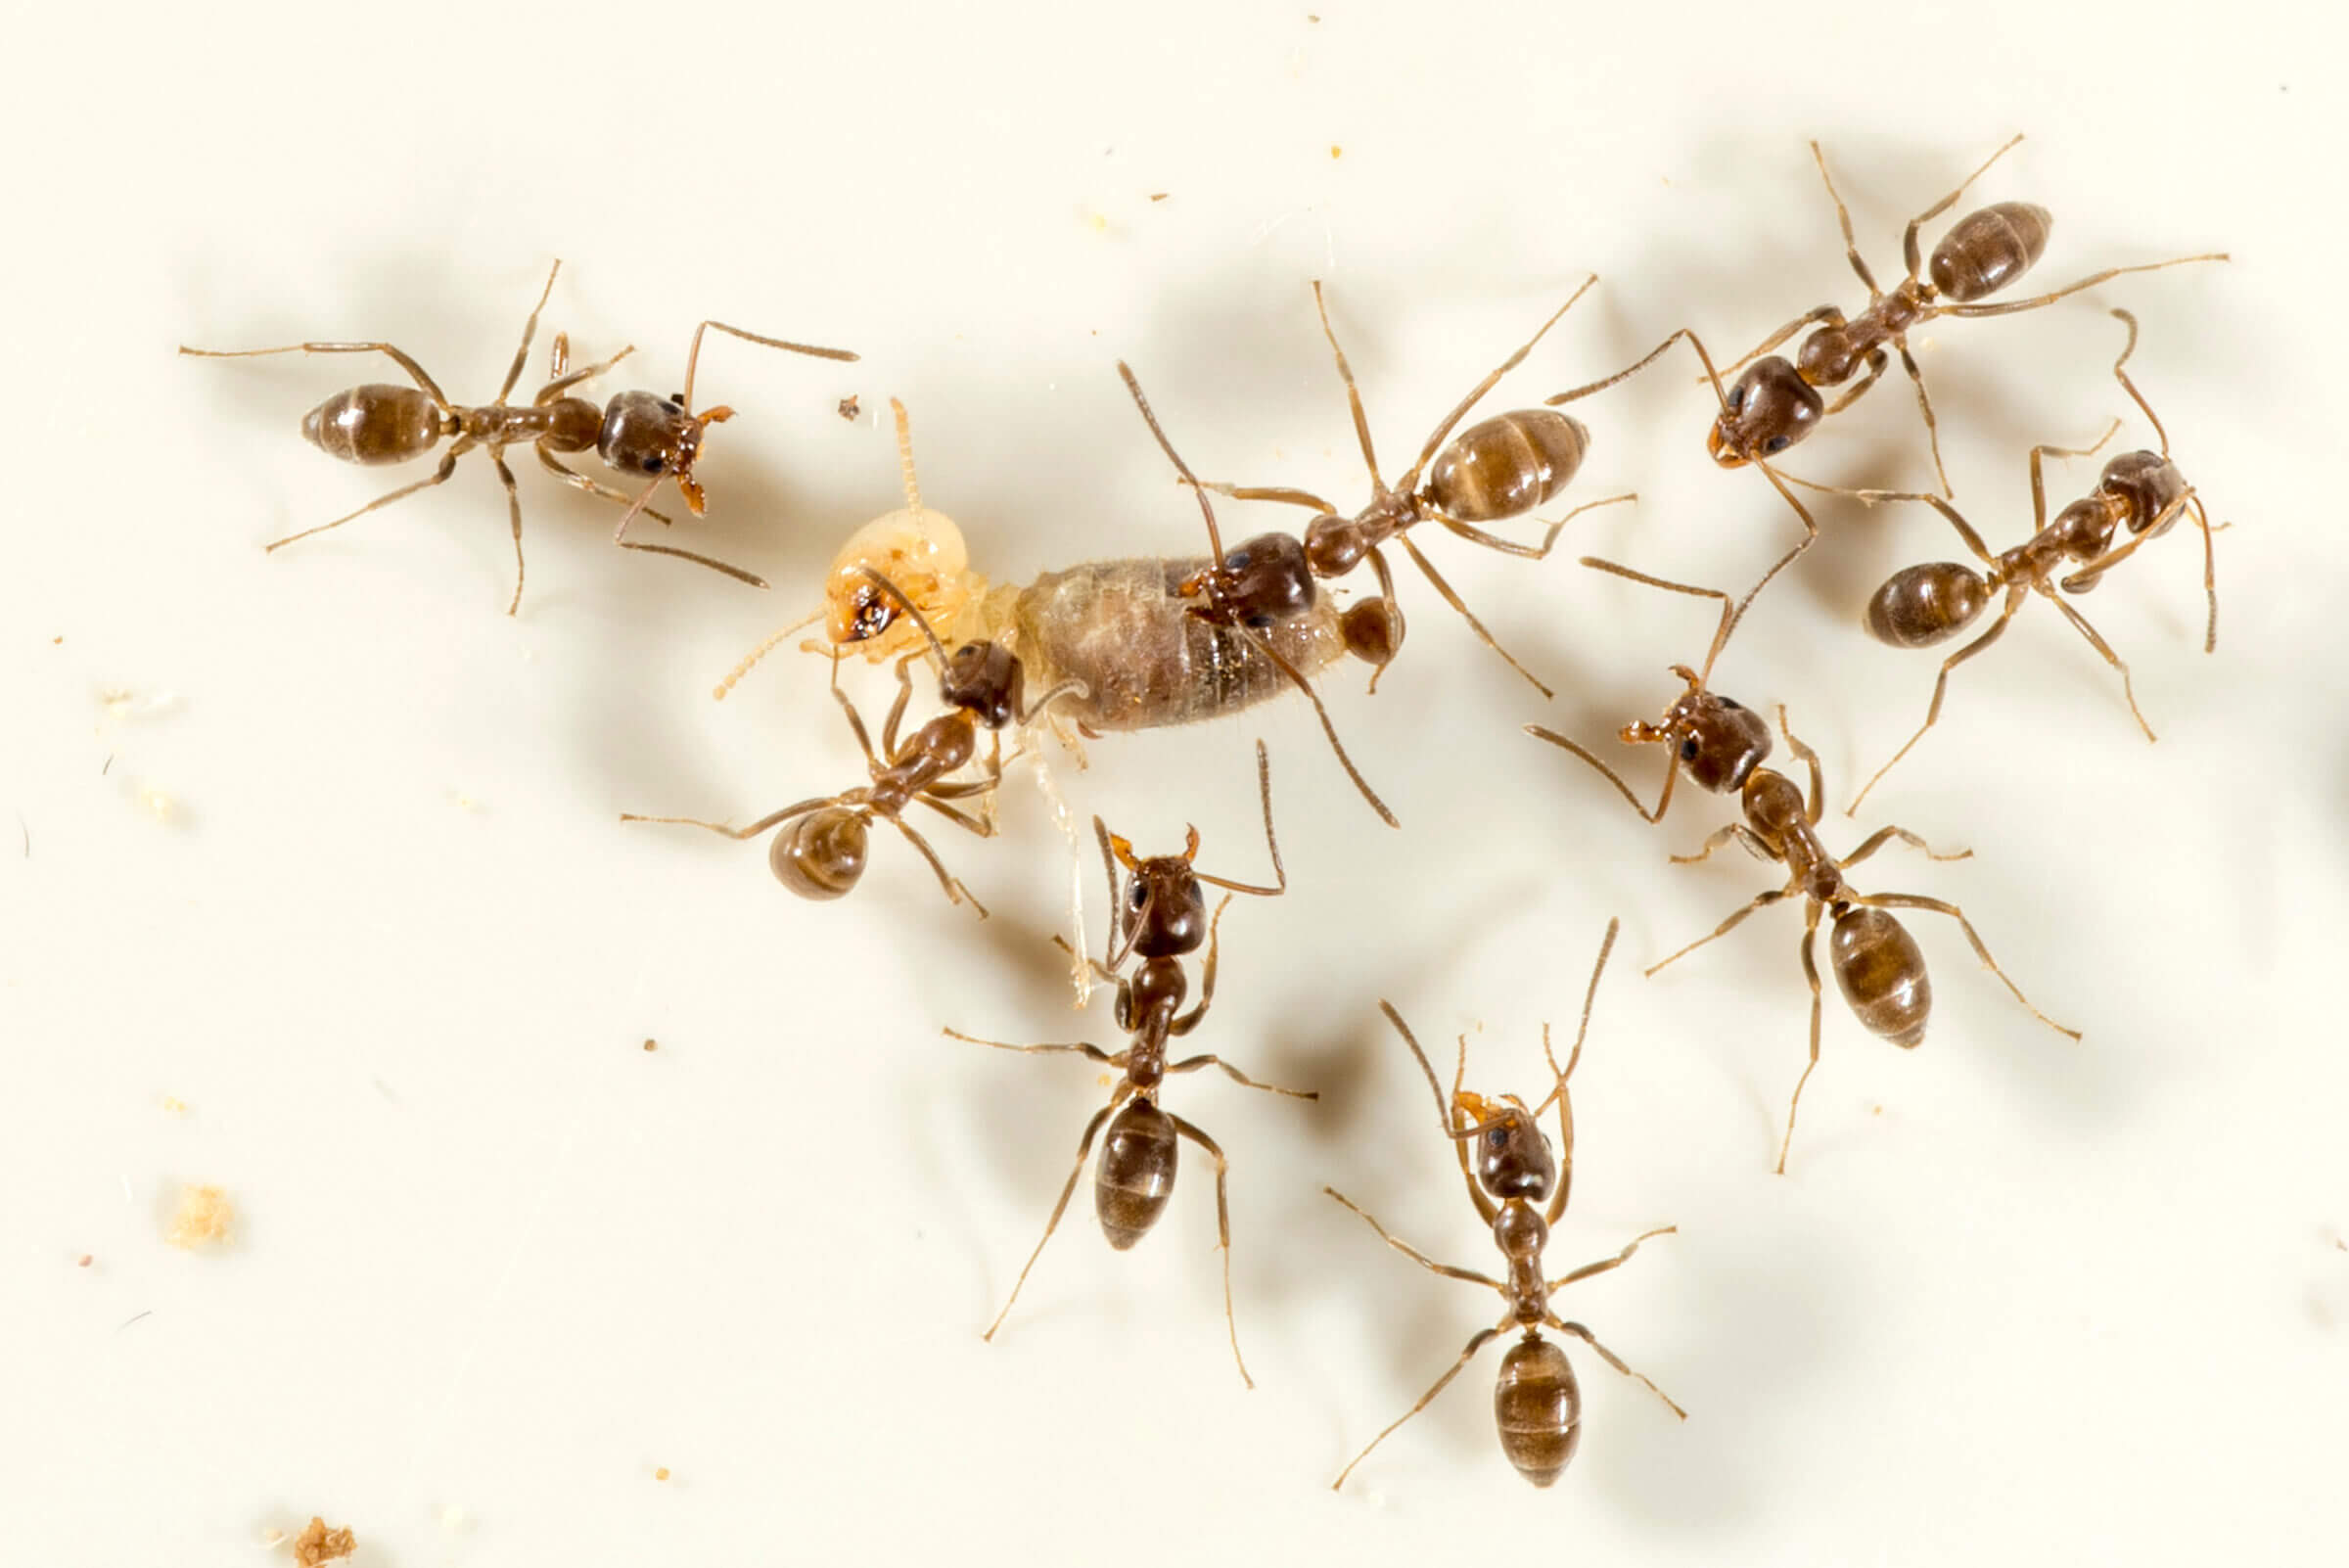 Death By Termite Purdue Entomologist Uses Natural Cravings To Control Invasive Ants Purdue University News